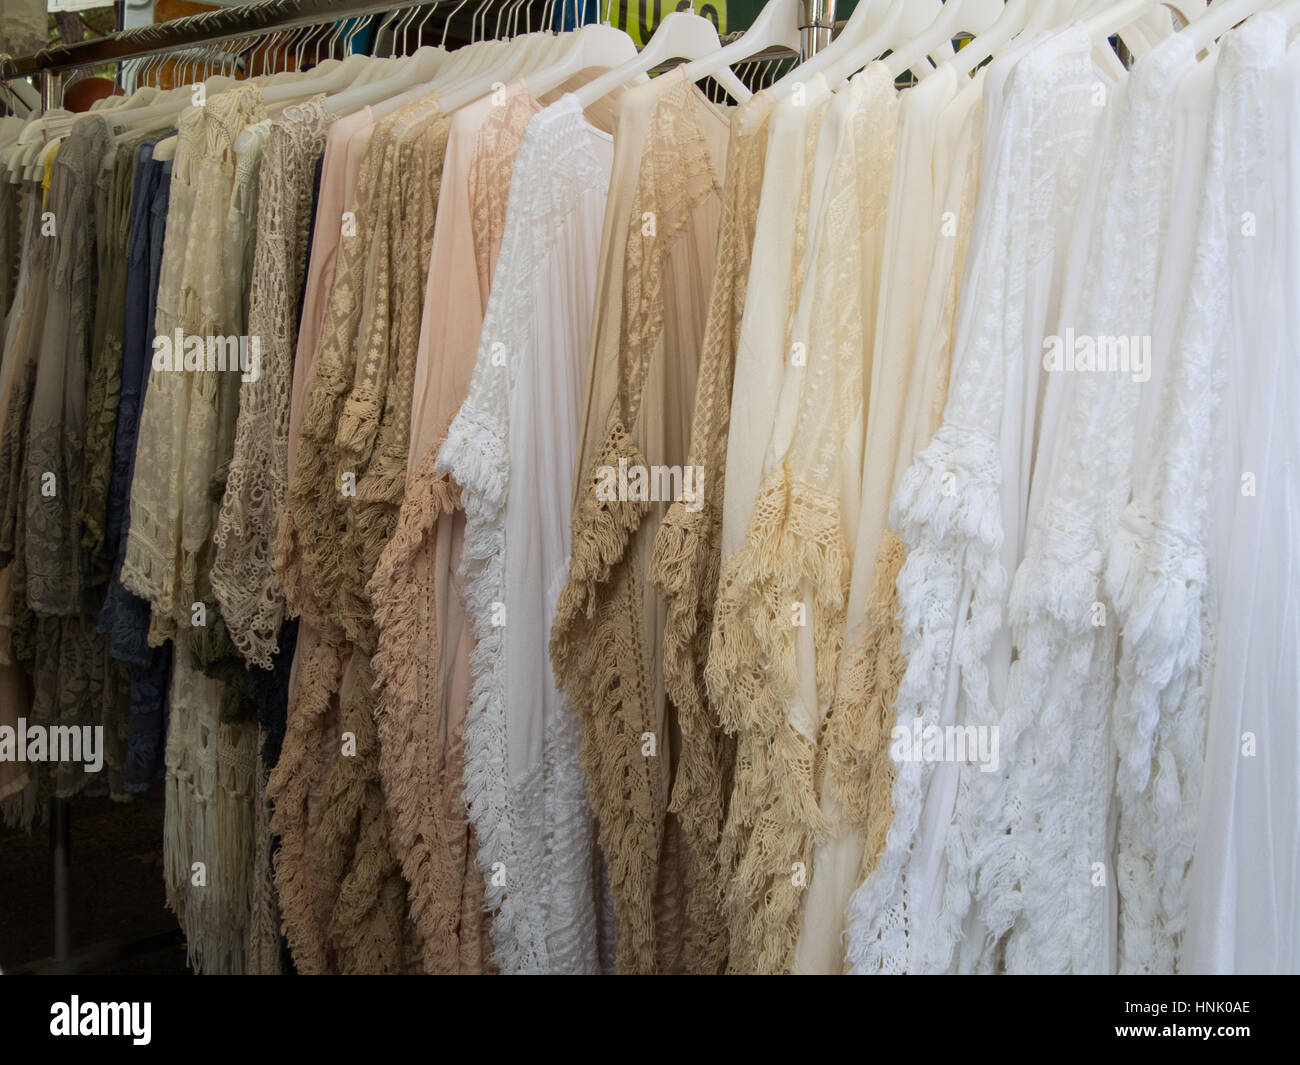 group of fringed clothes for woman in soft colors for sale in a market on a rack - Stock Image